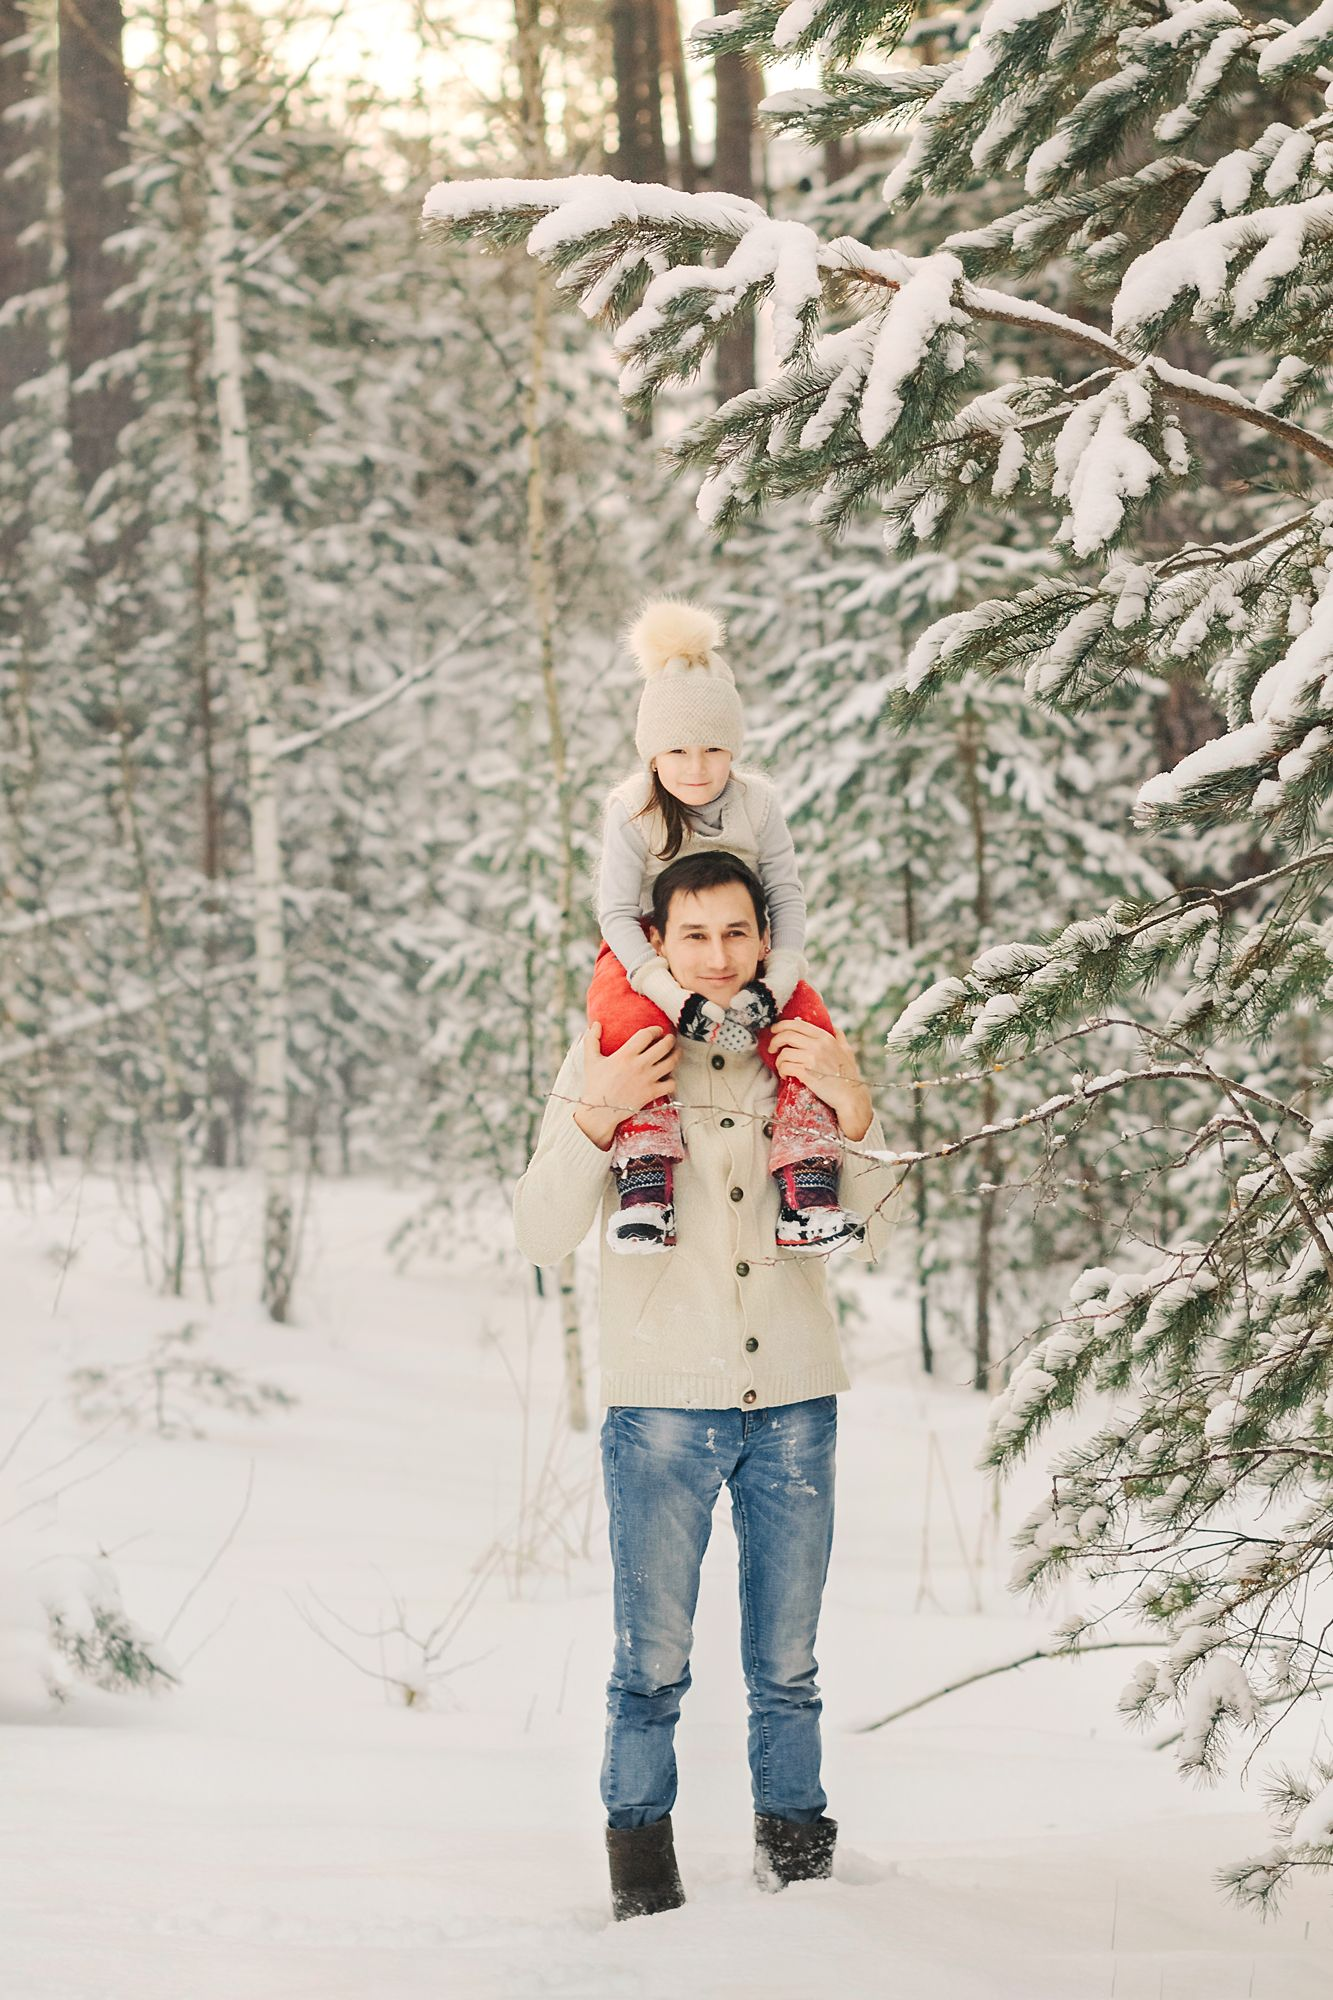 Winter family photos, couple, husband, wife, son, daughter